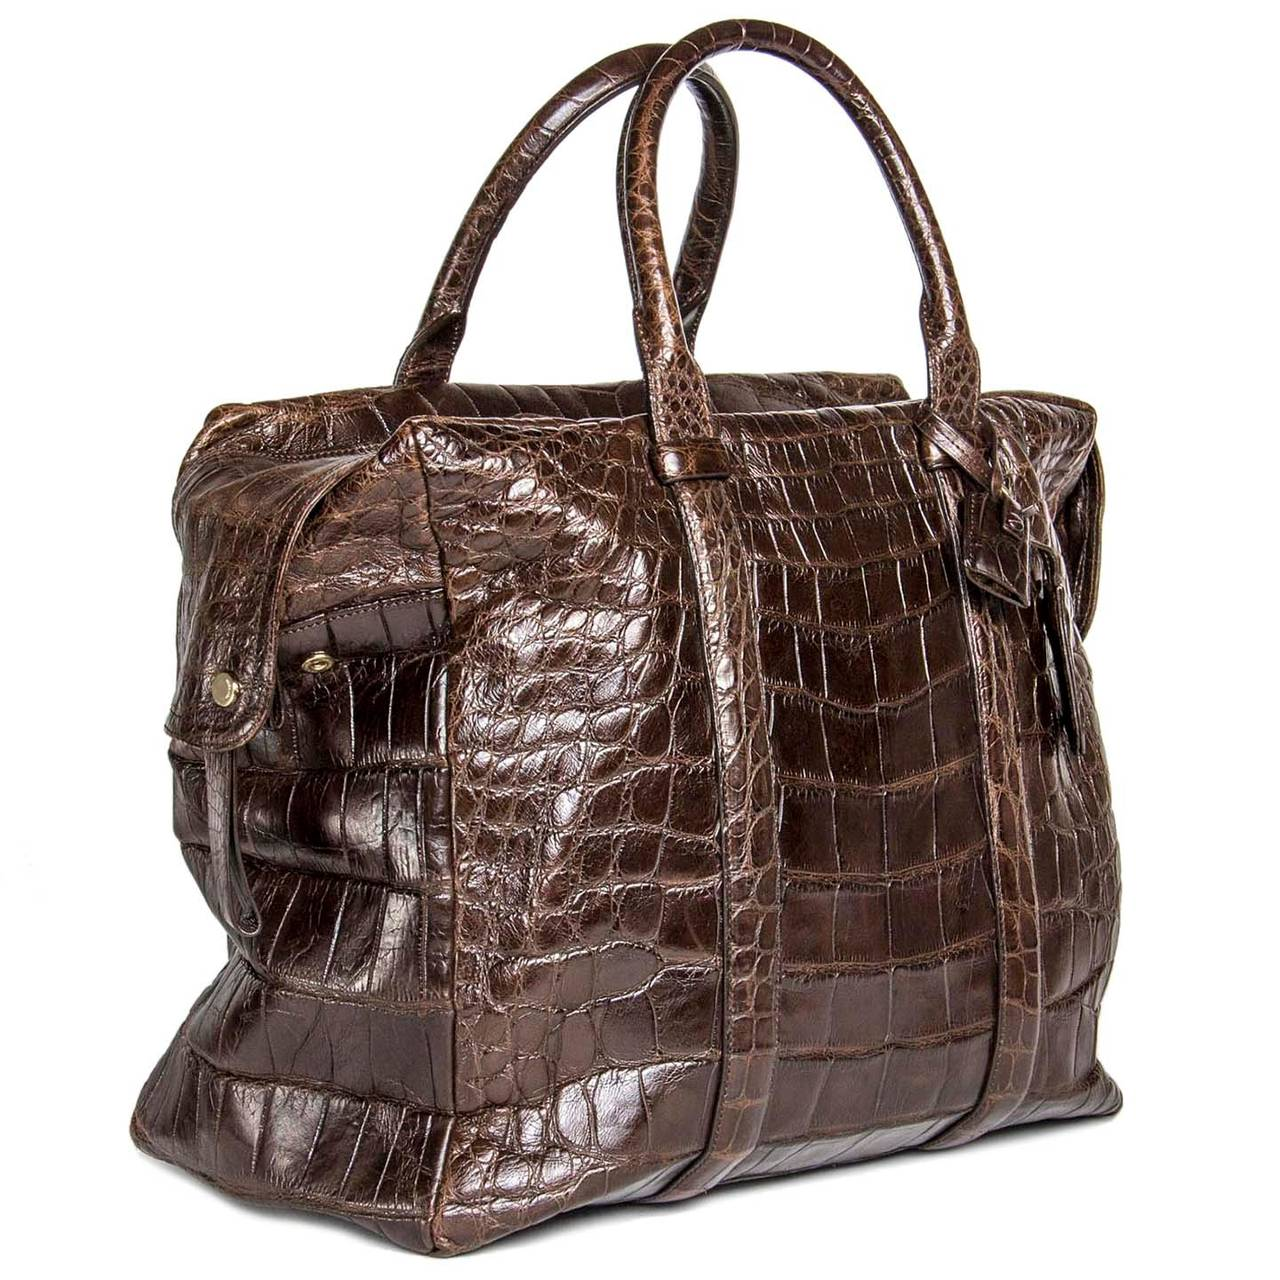 Chocolate brown crocodile oversized bag with wide flap zipper cover that closes with brass snaps. The shoulder straps were extended to go around the bag and decorate front and back. The bag also has matching brass and crocodile lock and key.